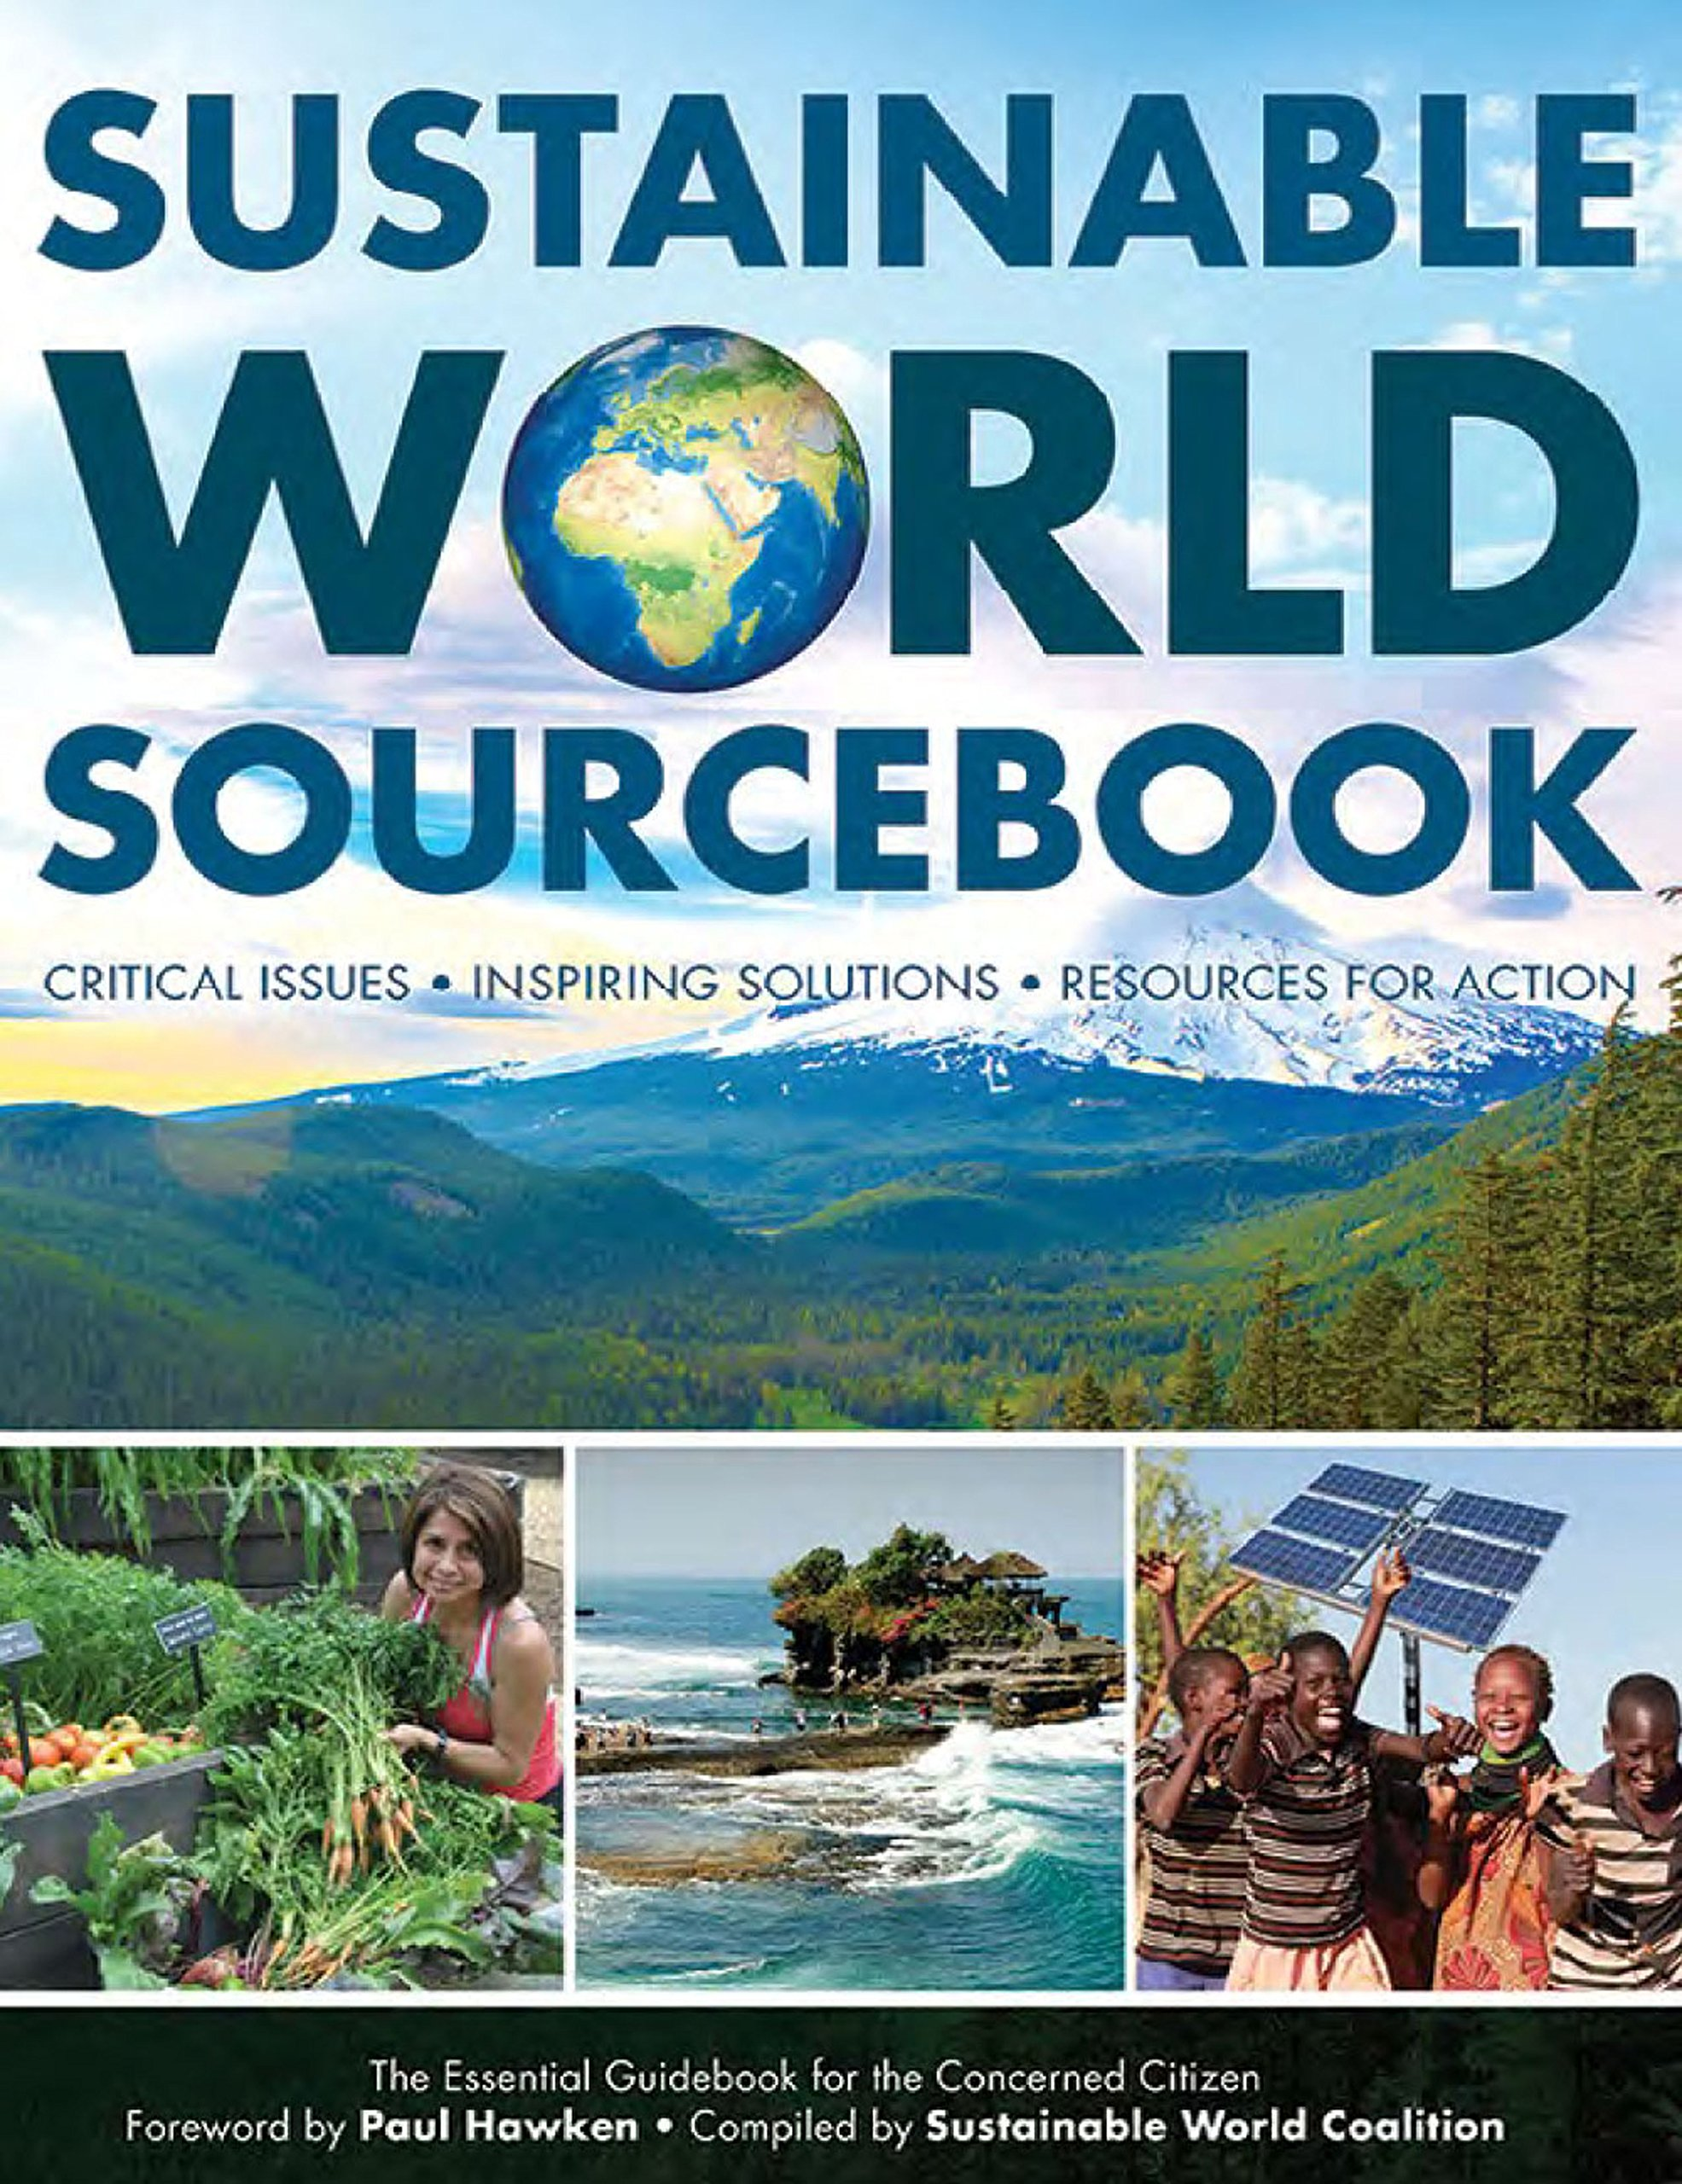 Image for Sustainable World Sourcebook, Critical Issues â?¢ Inspiring Solutions â?¢ Resources for Action, the Essential Guidebook for the Concerned Citizen